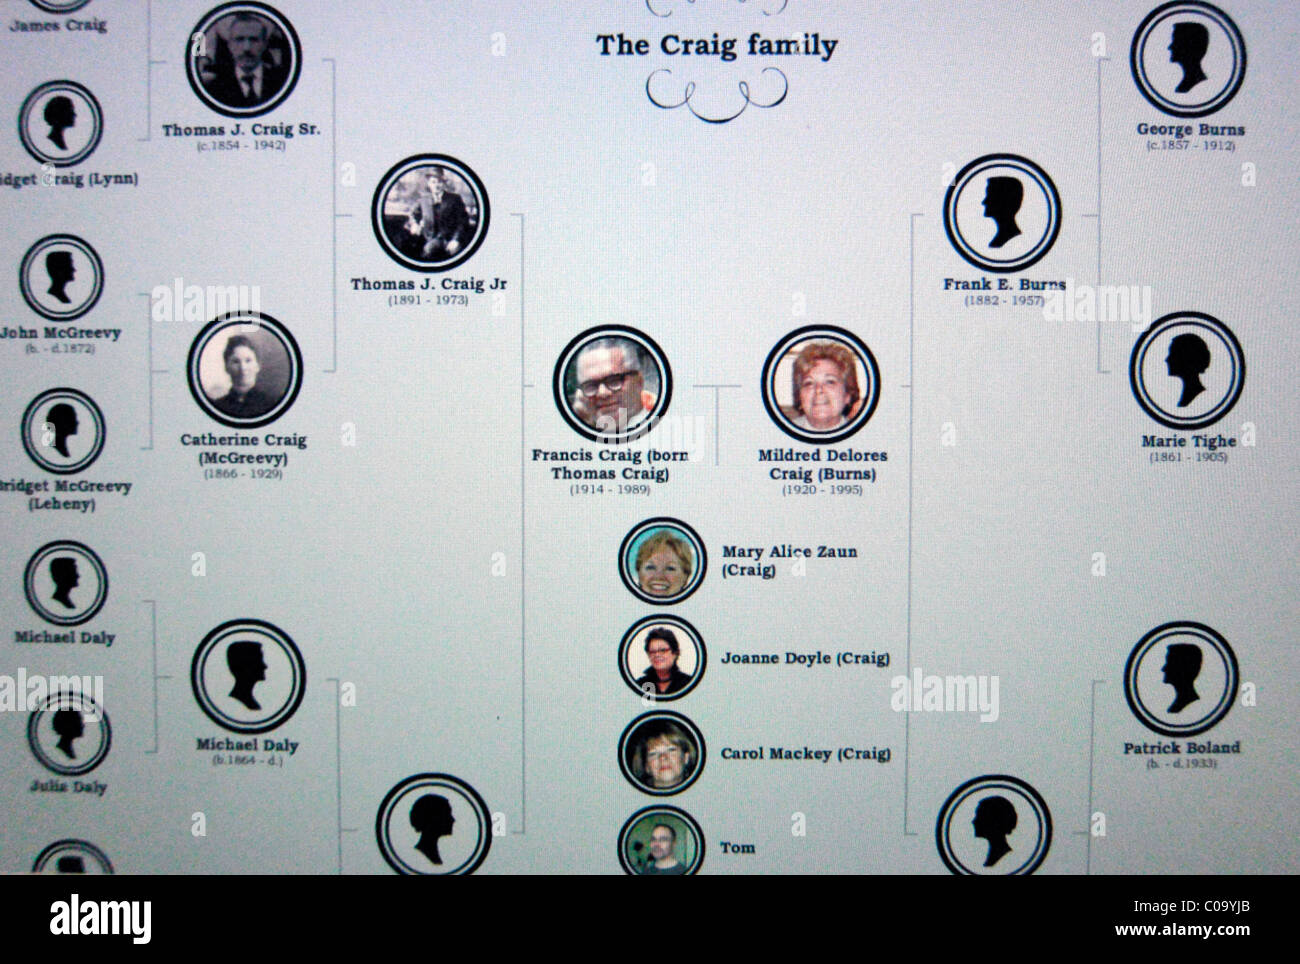 Craig Family Tree, 7 Generations, PICTORIAL , 'GENEALOGY CHART', - Stock Image